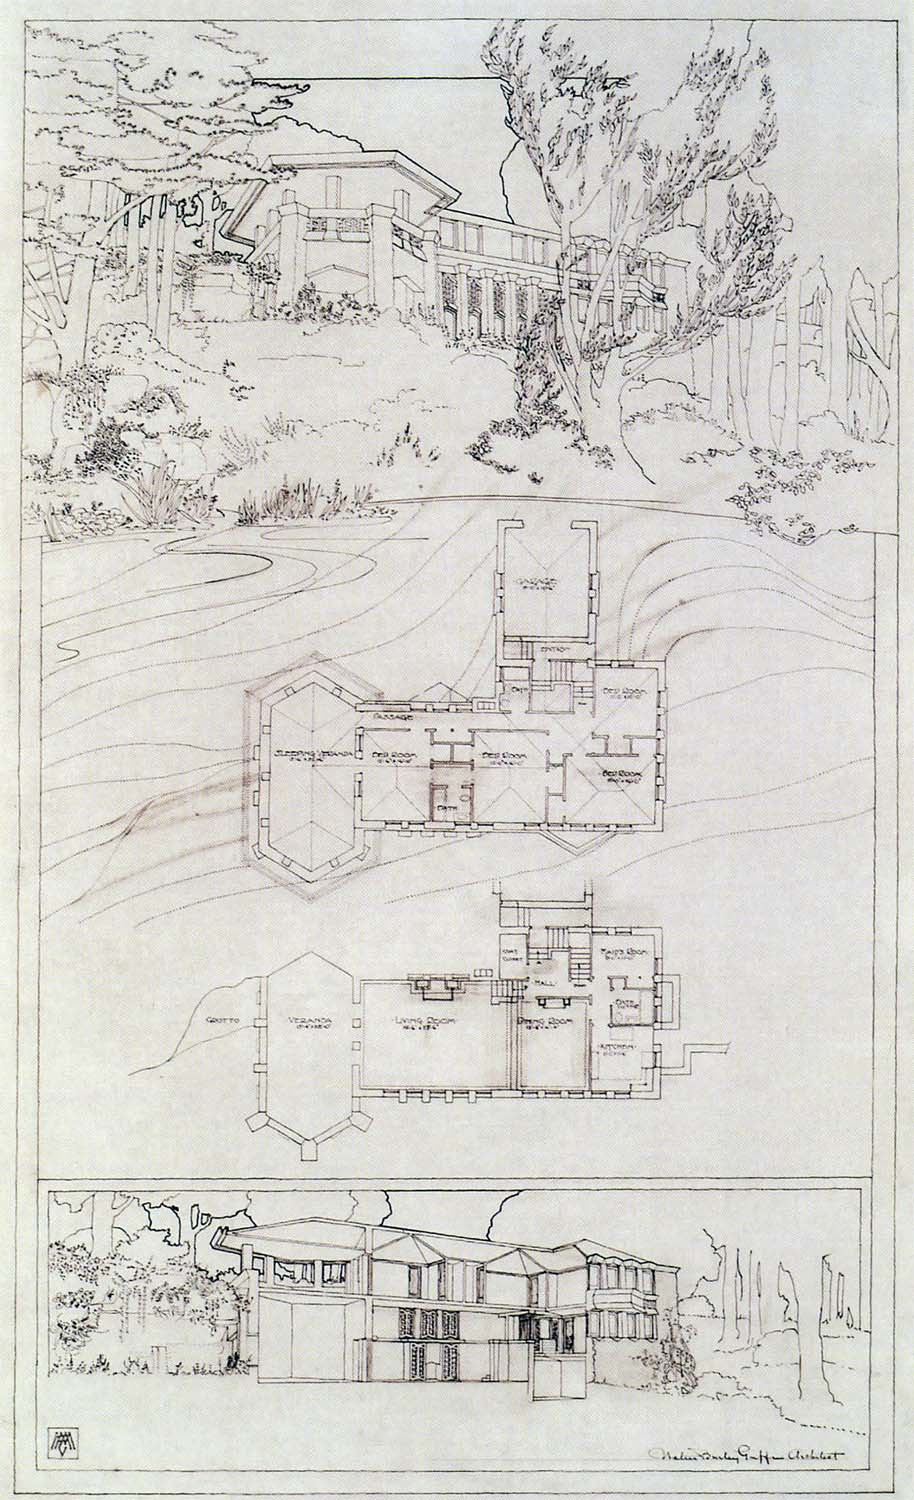 William J. Holahan Dwelling, Mason City IA,  W.B. Griffin Architect, 1912 (never built)